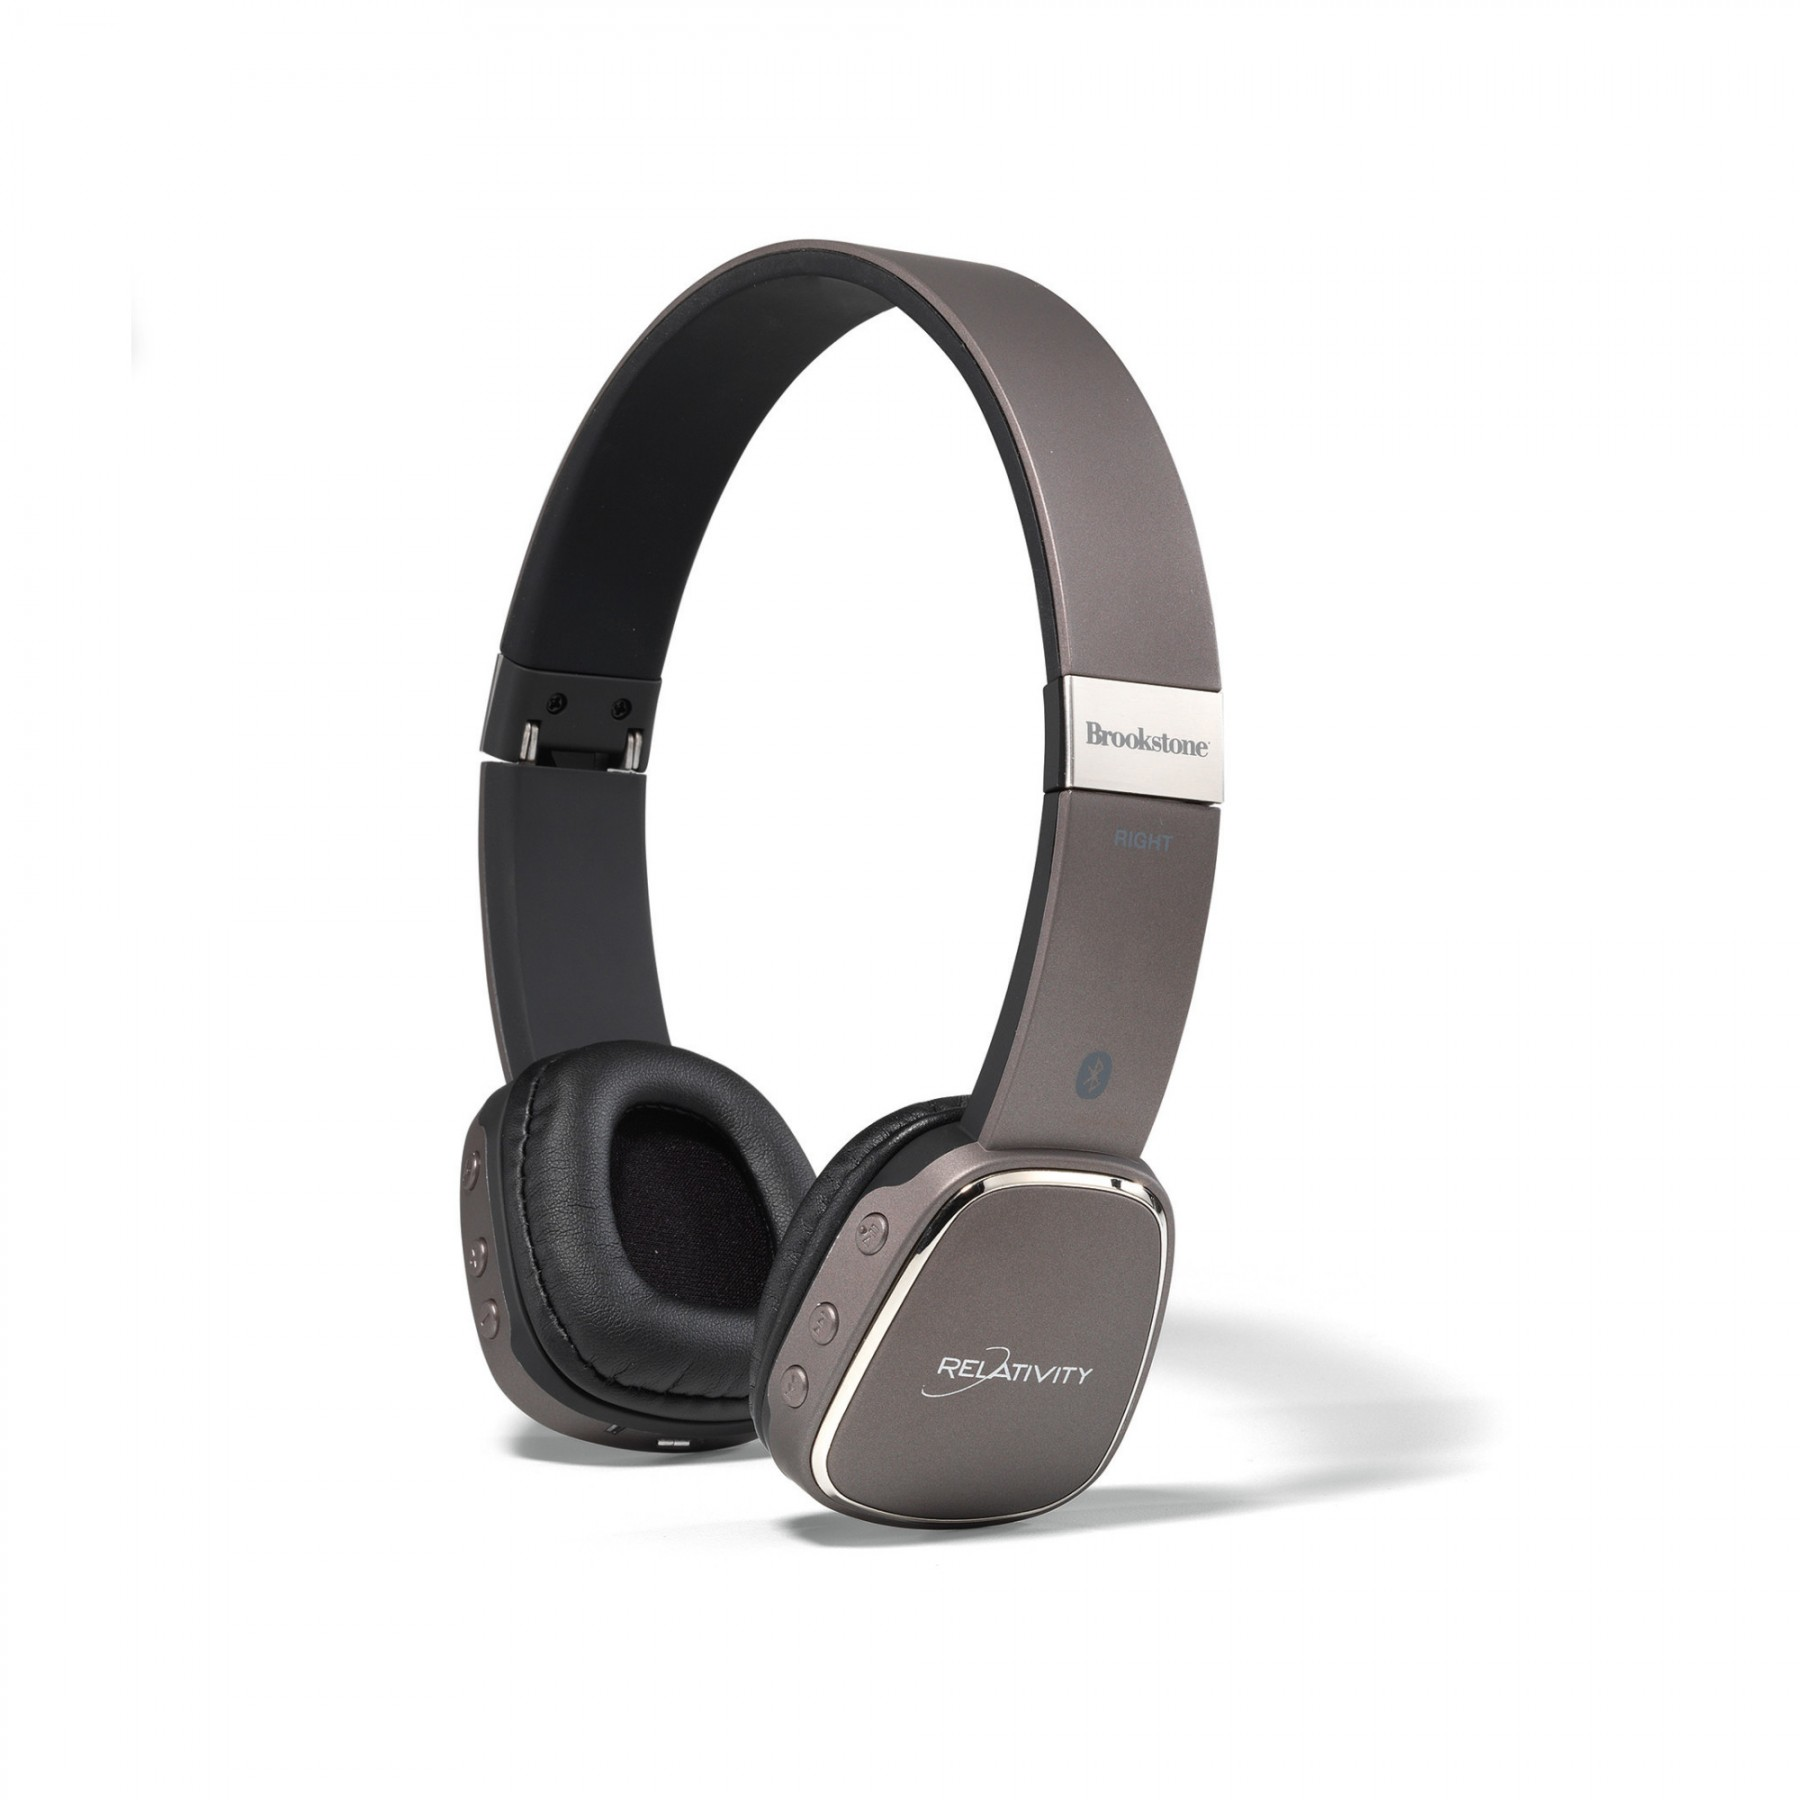 Brookstone Pro Bluetooth Headphones